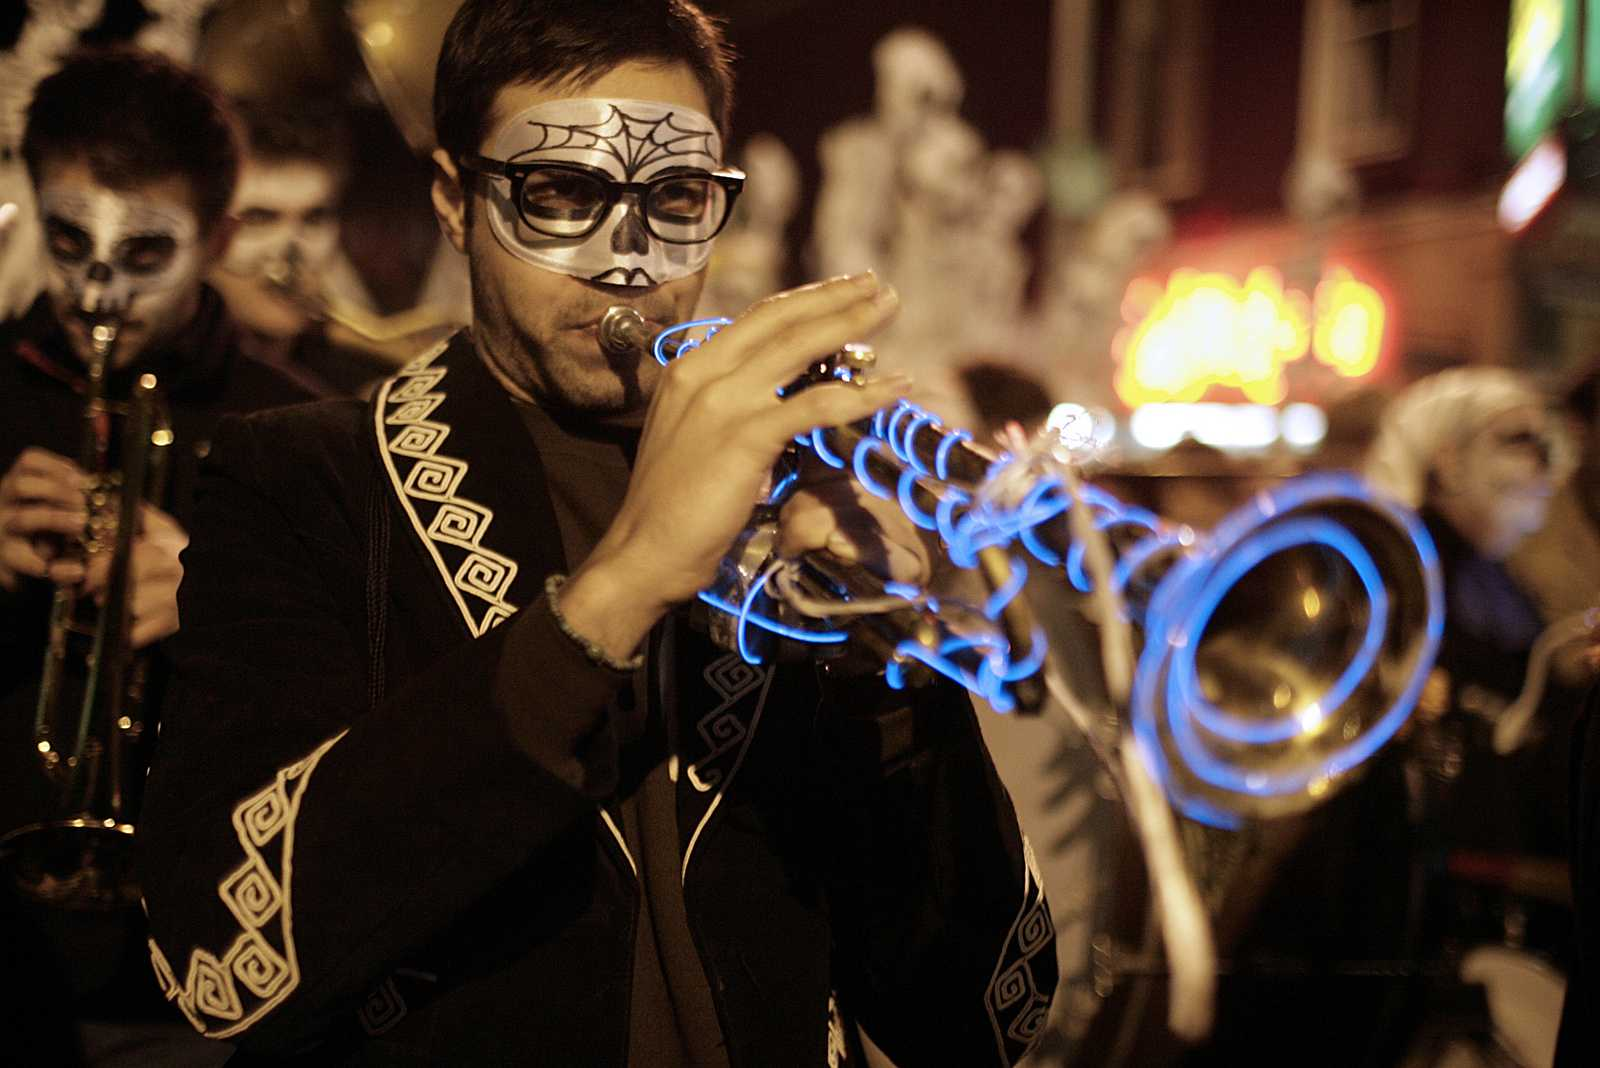 A performer plays a trumpet laced with blue lights during the Día de Muertos parade on Nov 2. The parade took place in San Francisco's Mission District. Photo by John Ornelas / Xpress